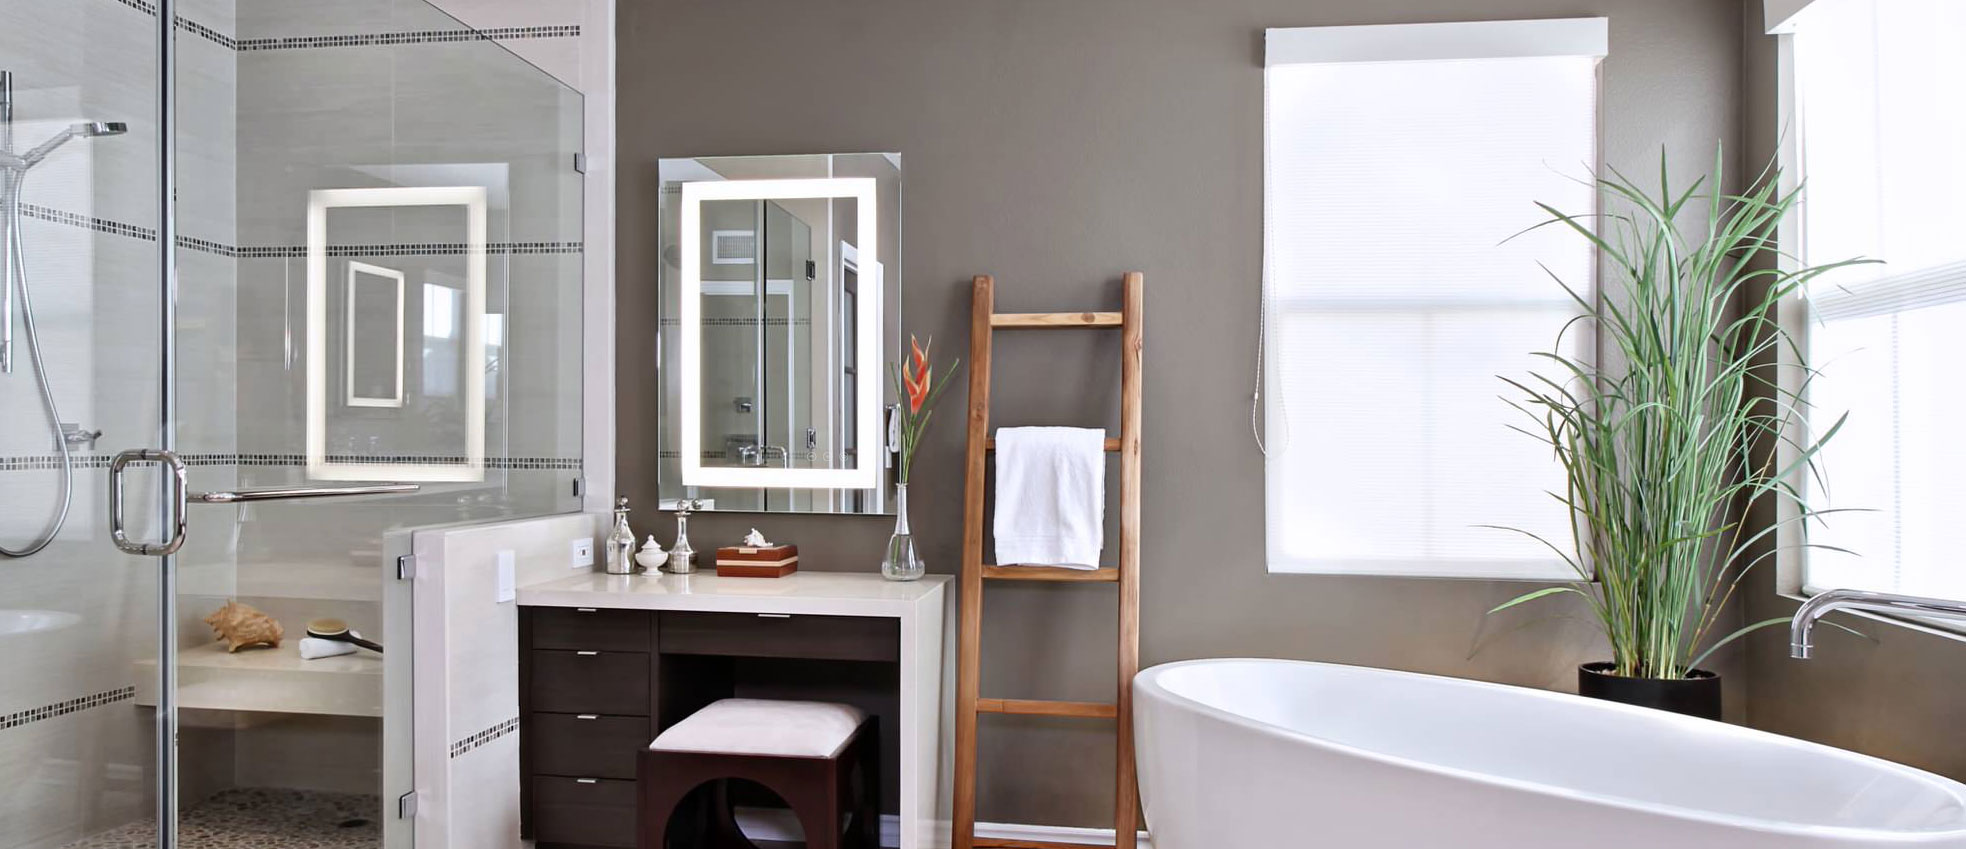 Bluetooth Bathroom Mirror Youtube viio | beauty, sound, & light